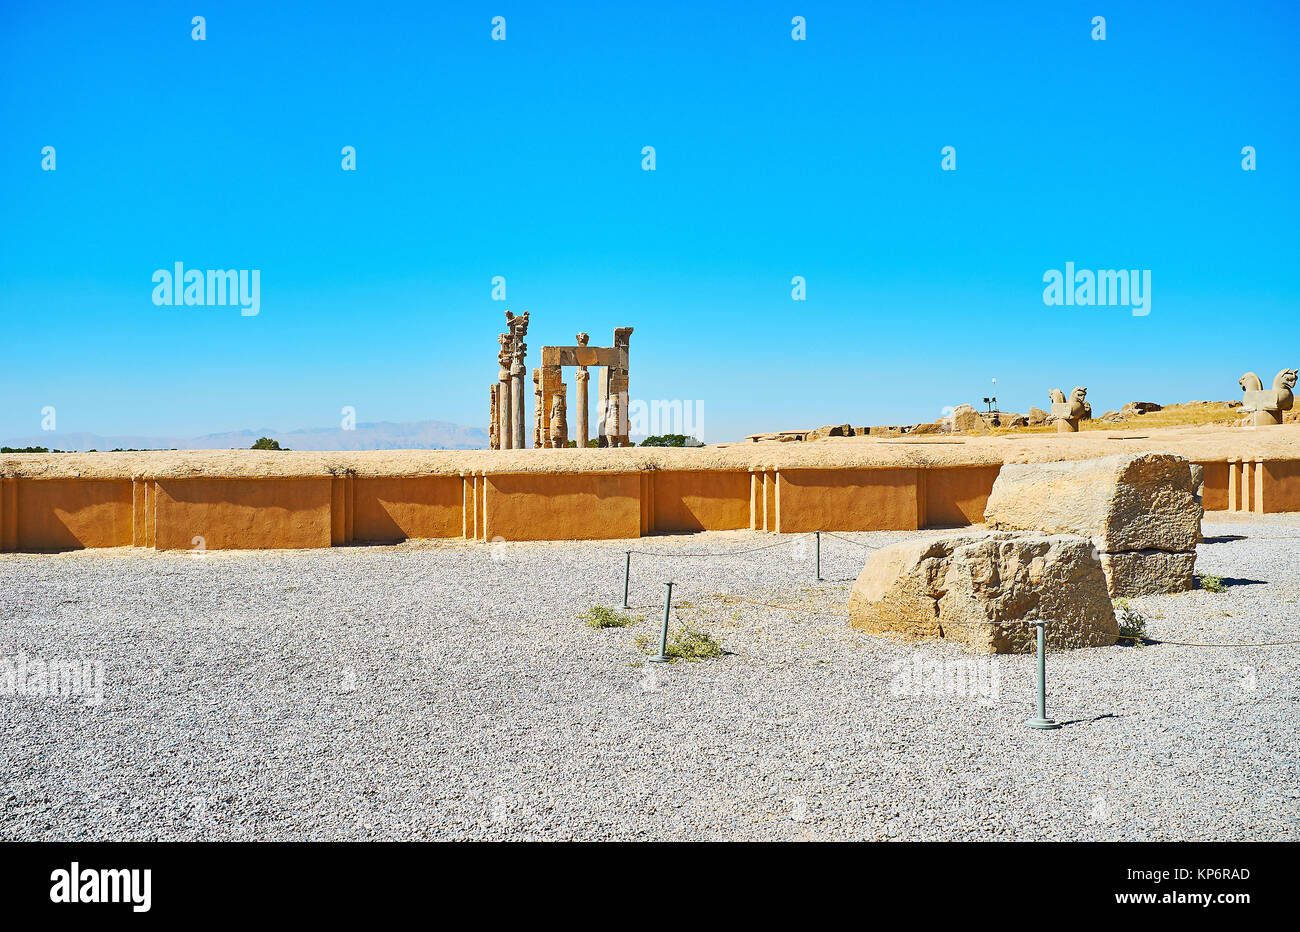 The view on the ancient All Nations (Xerxes) Gate behind the foundations of ruined buildings, Persepolis, Iran. Stock Photo